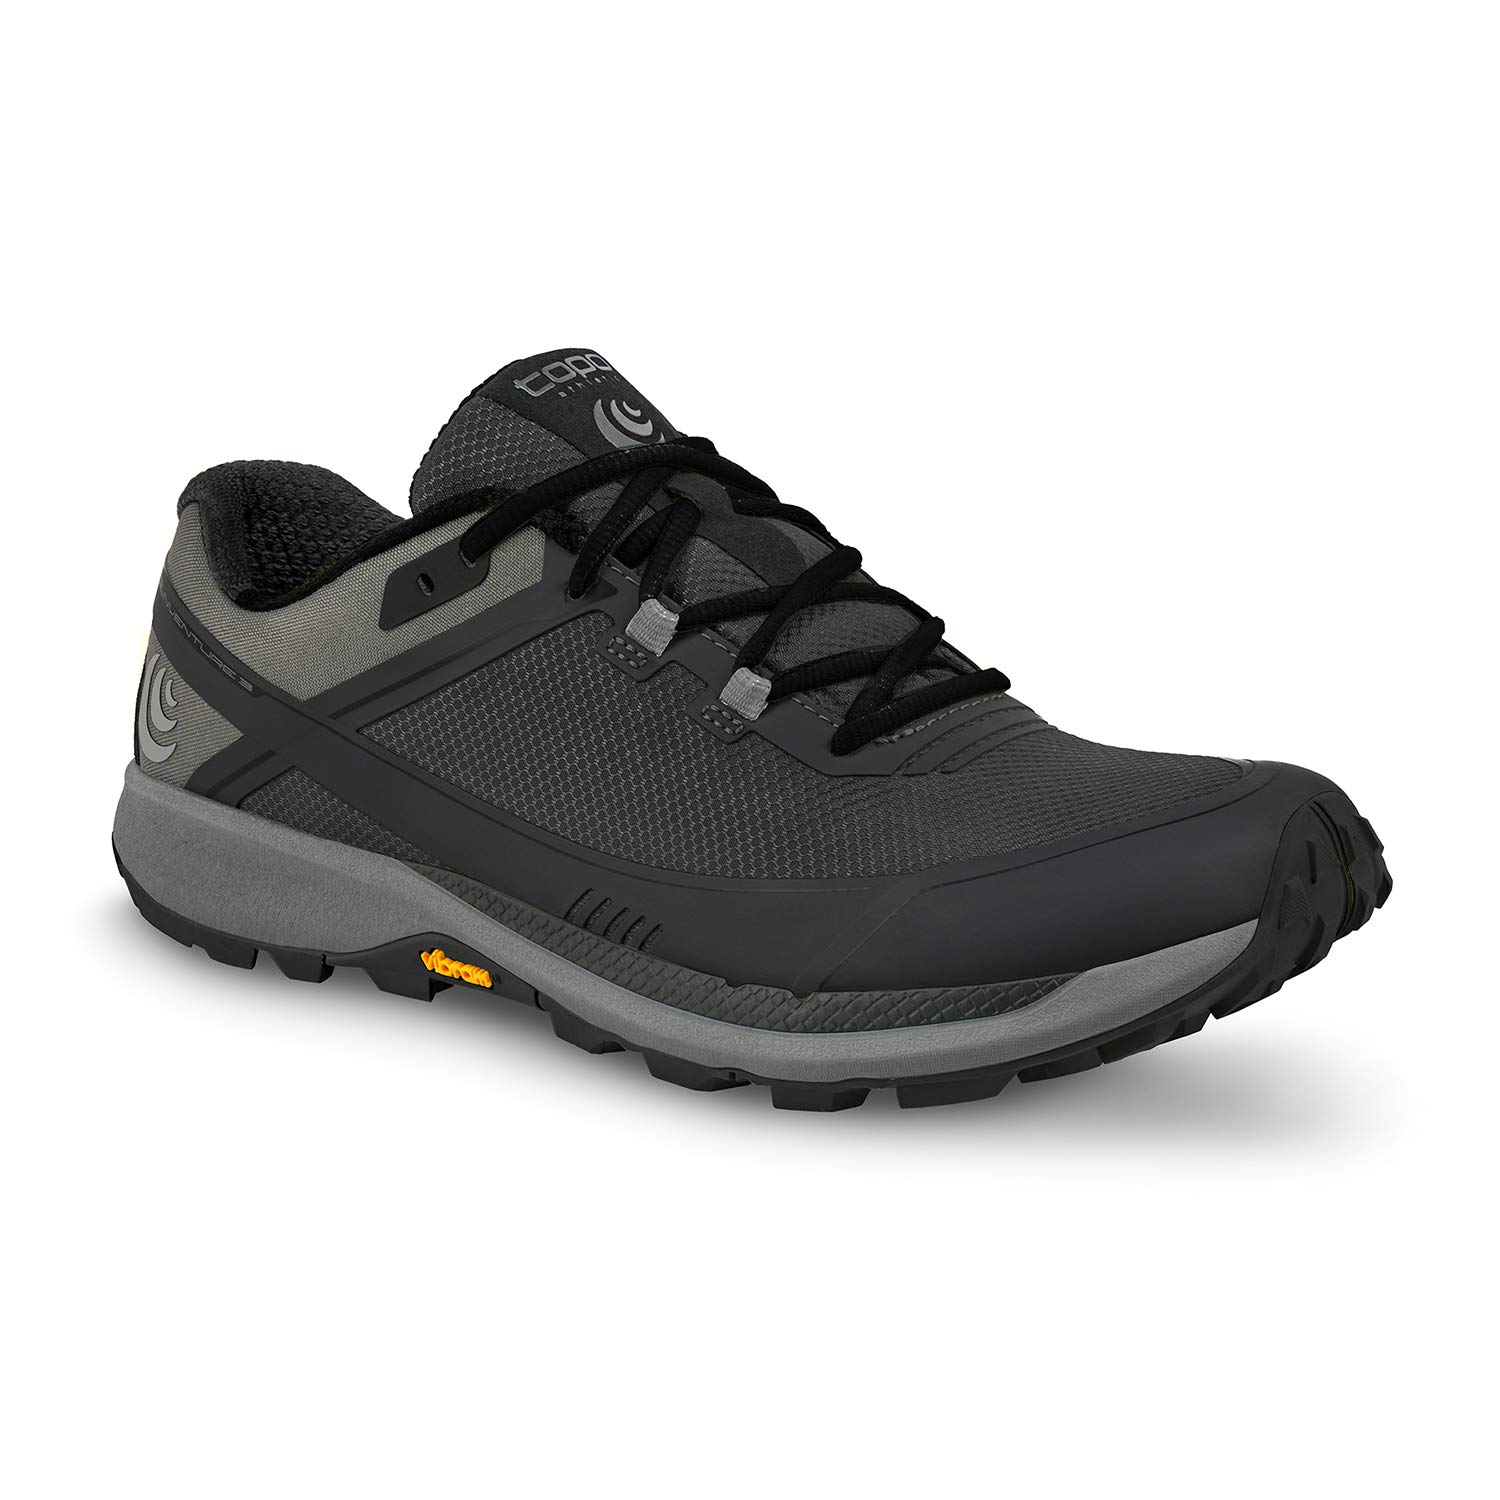 Topo Athletic Women's Runventure 3 Lightweight Trail Running Shoes